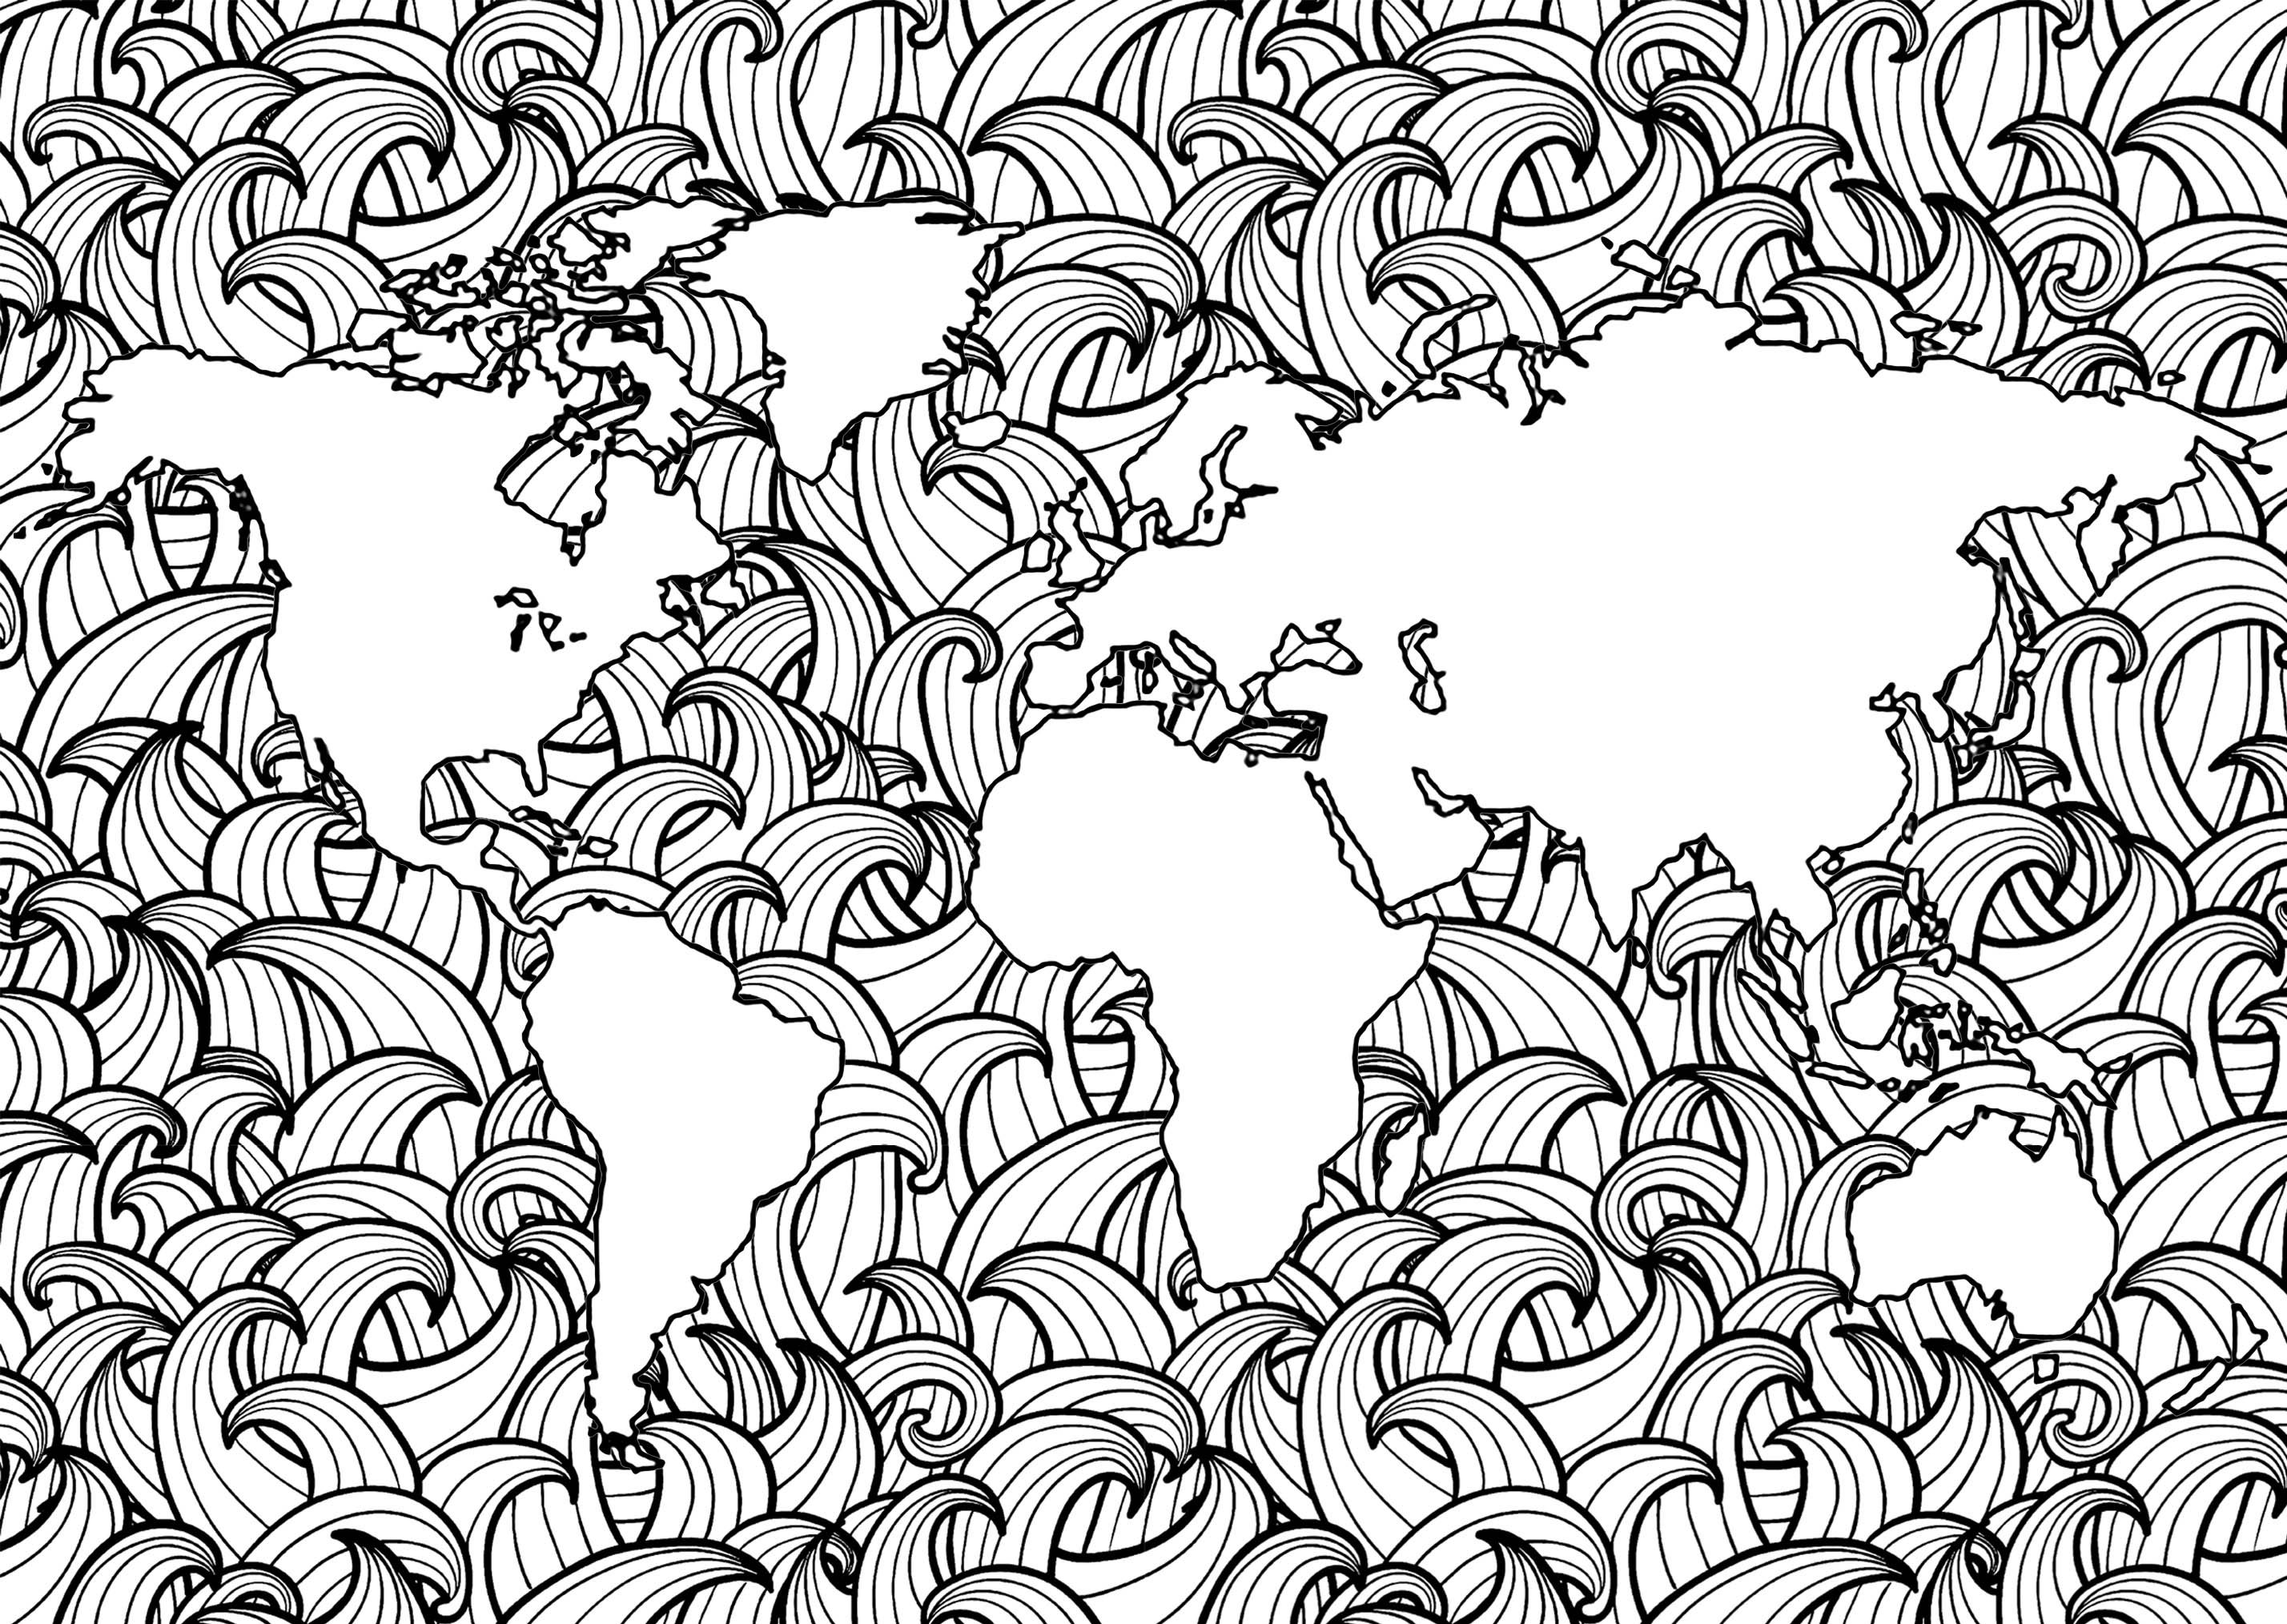 Planet Earth With Complex Waves Patterns In The Seas Coloring Pages Antistress Coloring Colouring Pages